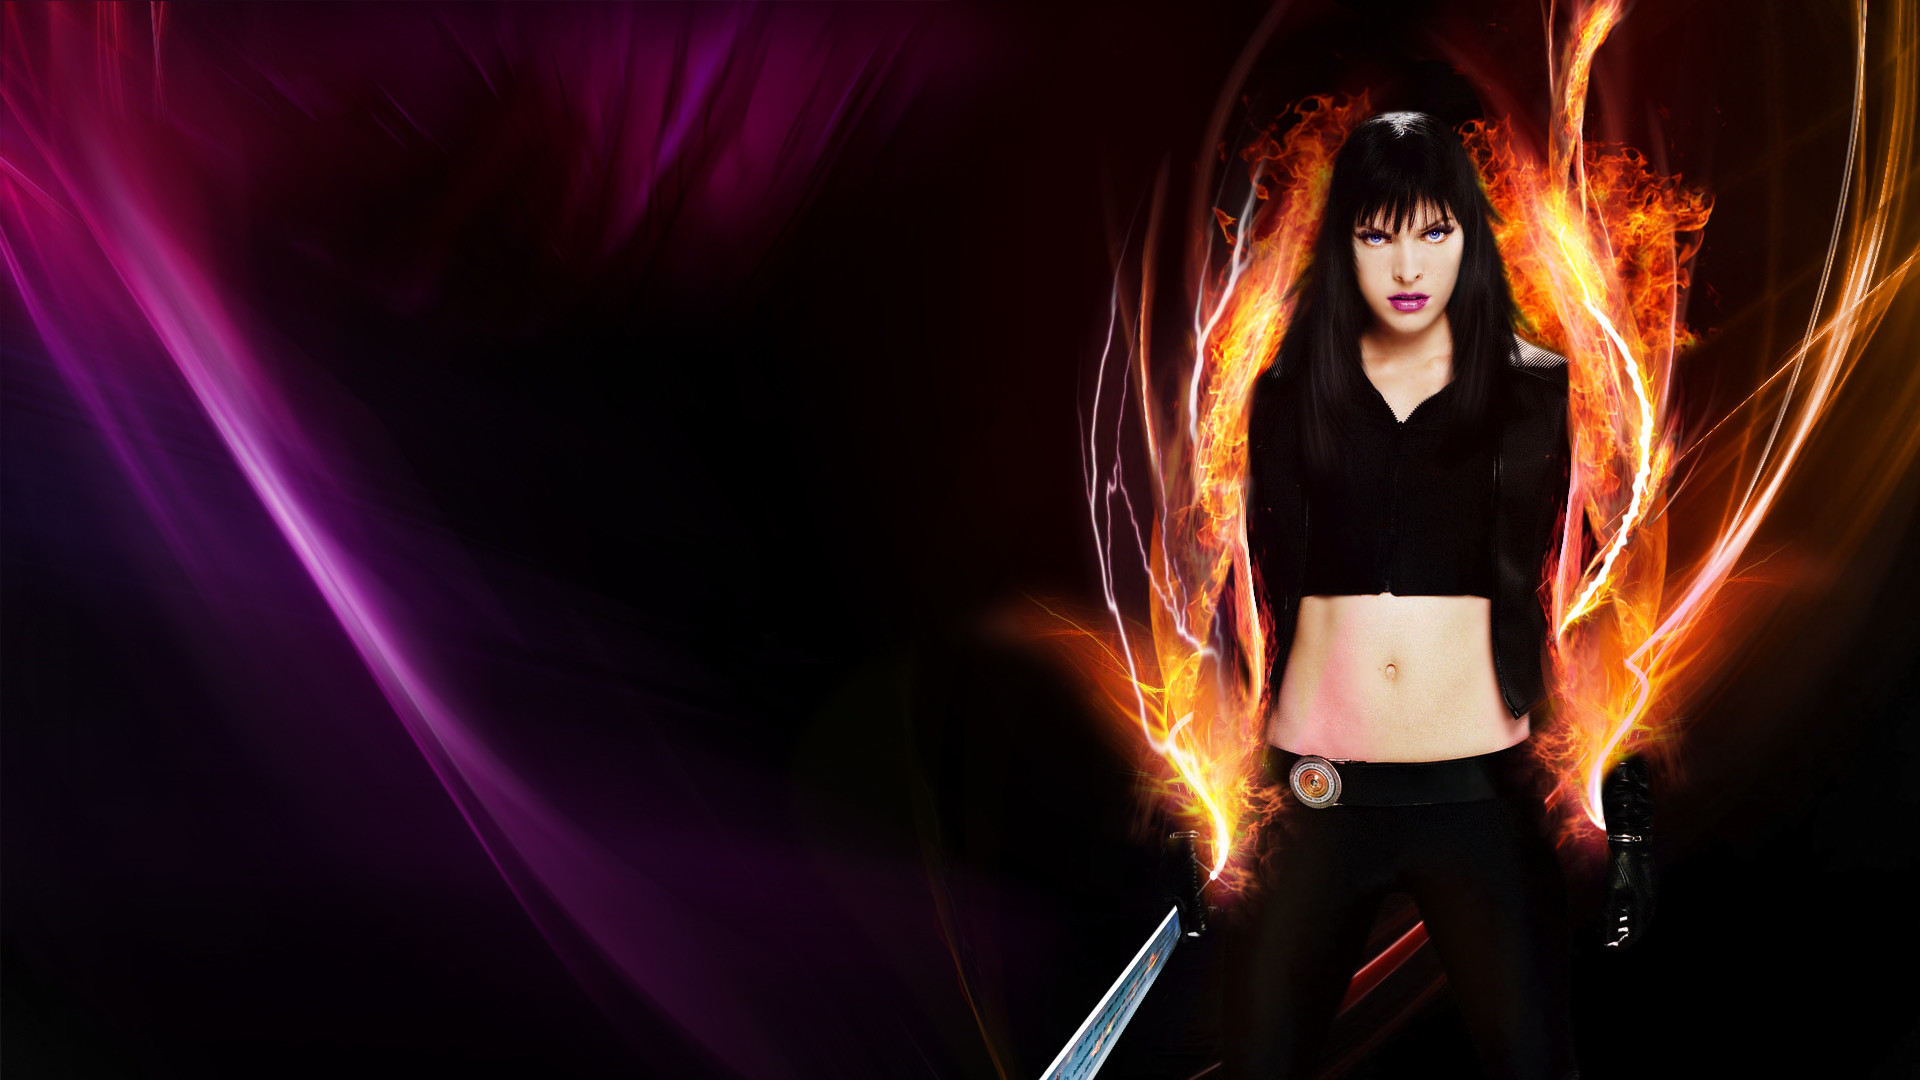 Ultraviolet, HD Wallpaper and background photos of Ultraviolet_MiX_Milla  for fans of Milla Jovovich images.